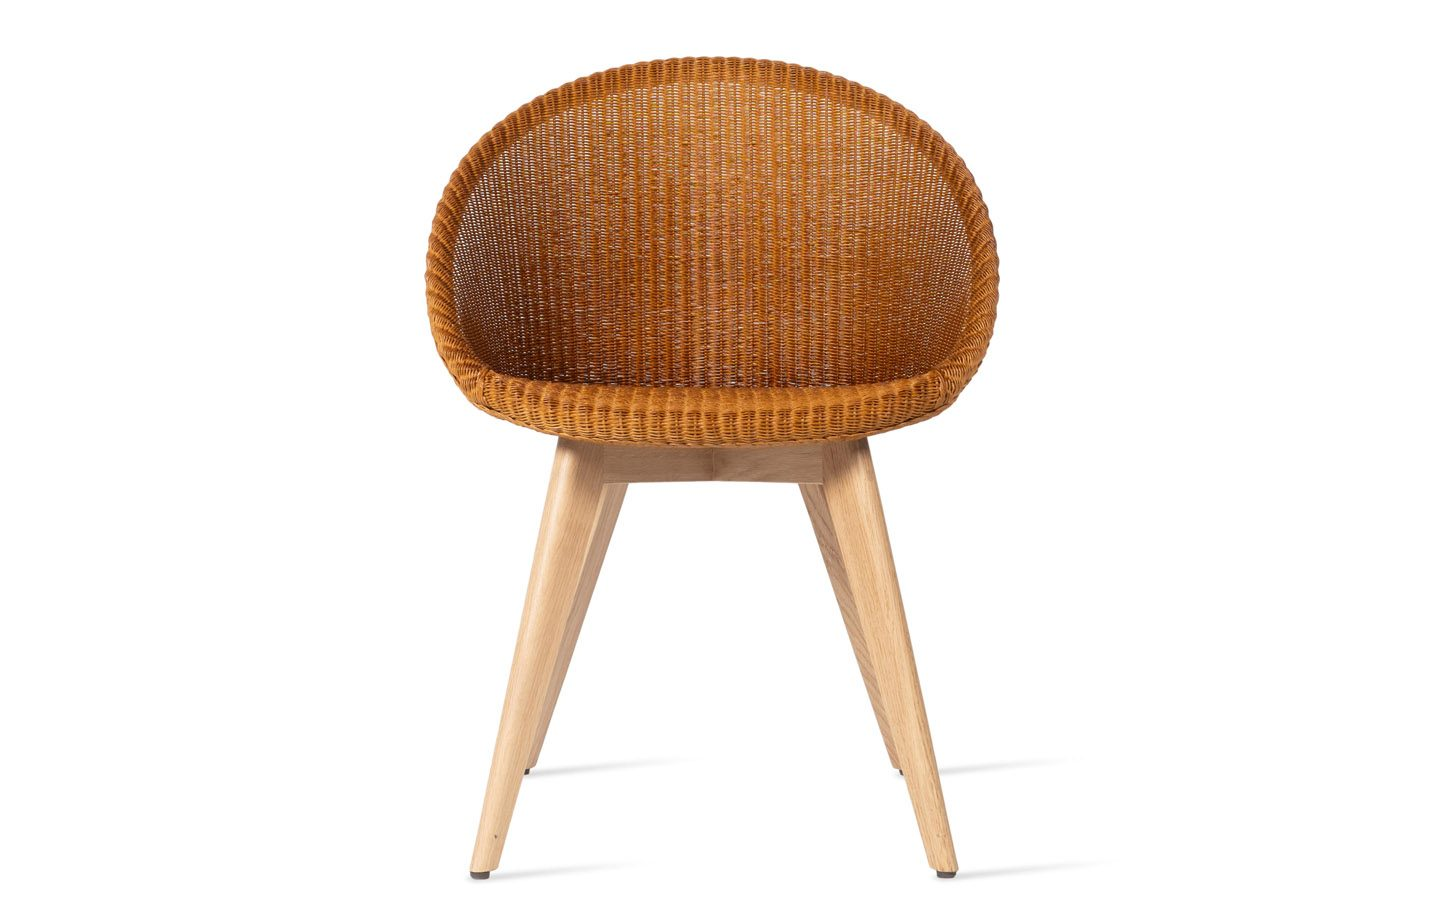 Joe-dining-chair-wood-base-natural-02